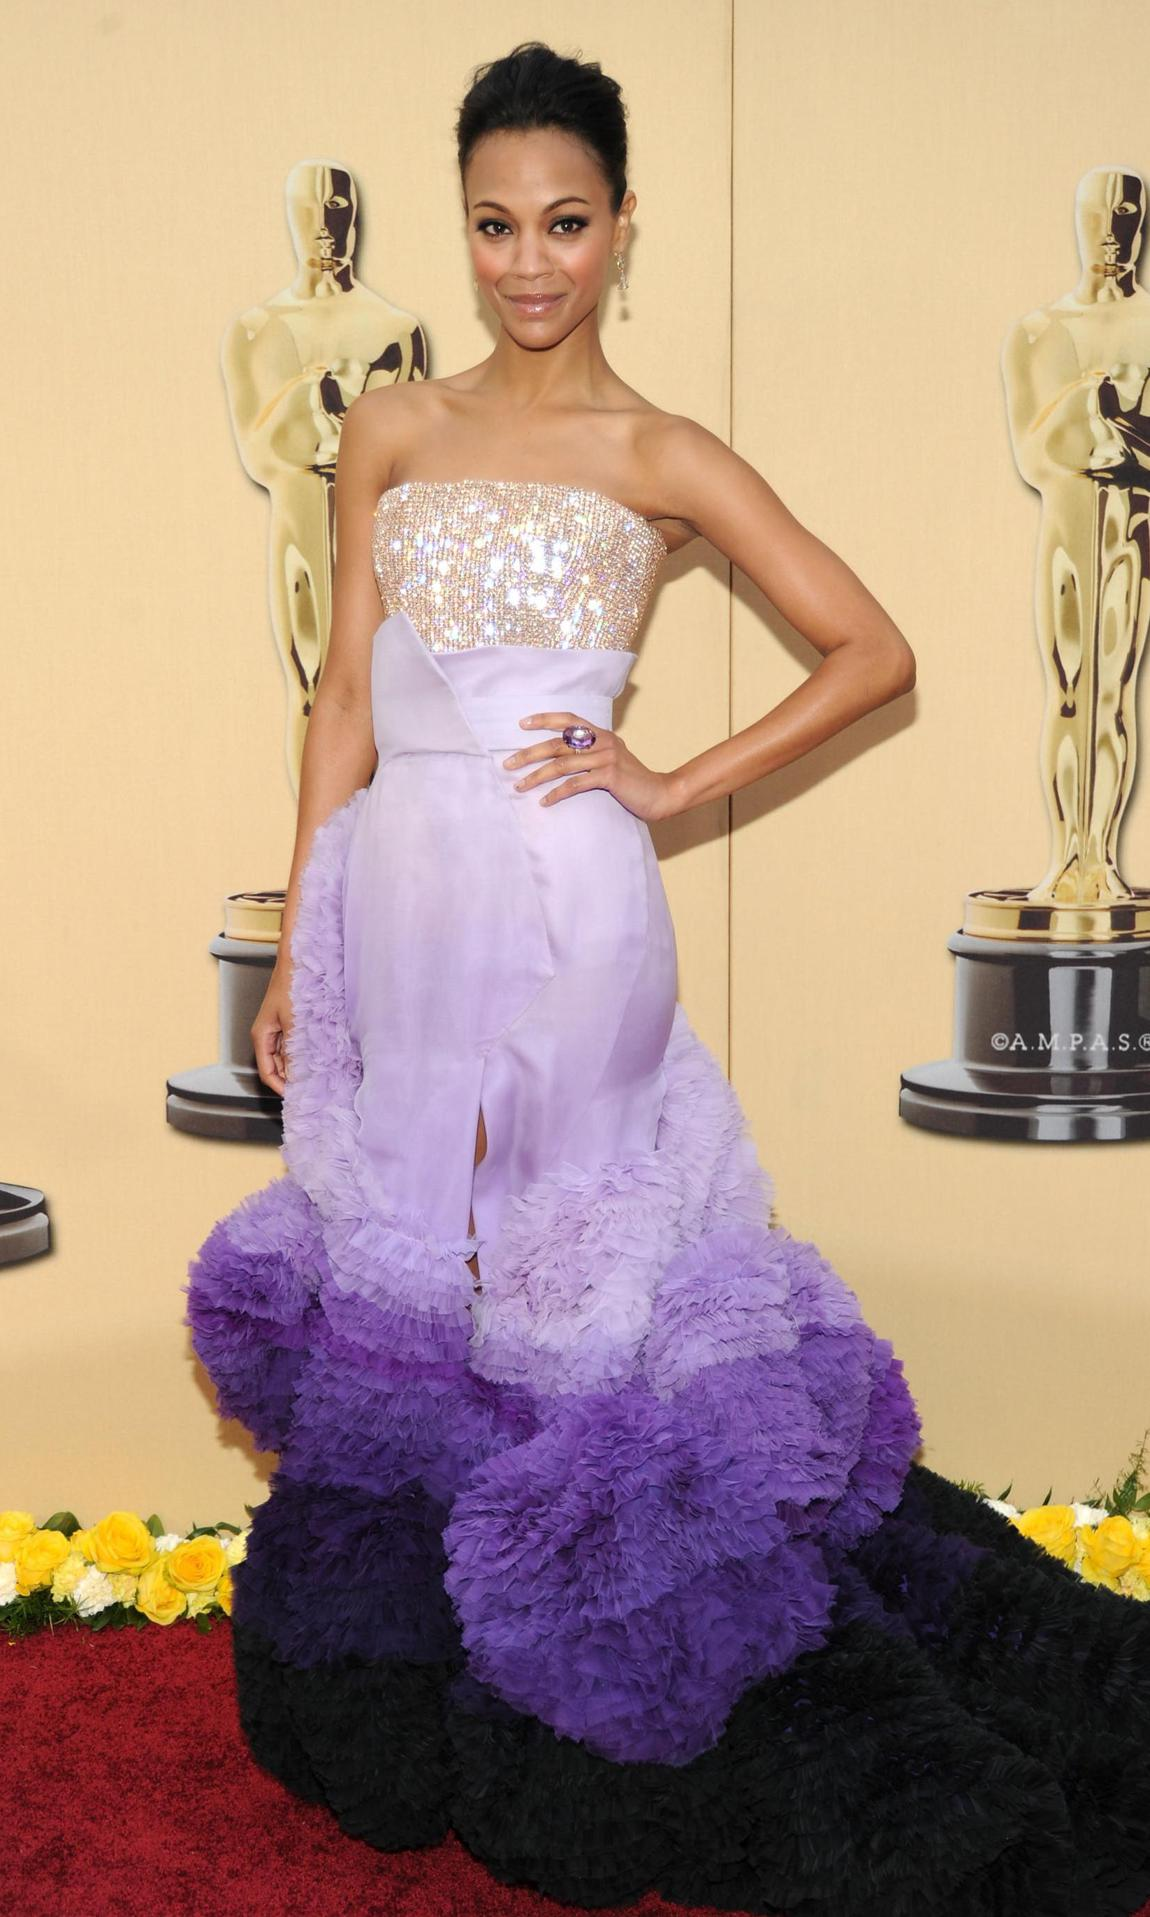 Zoe Saldana in a purple Givenchy Couture dress